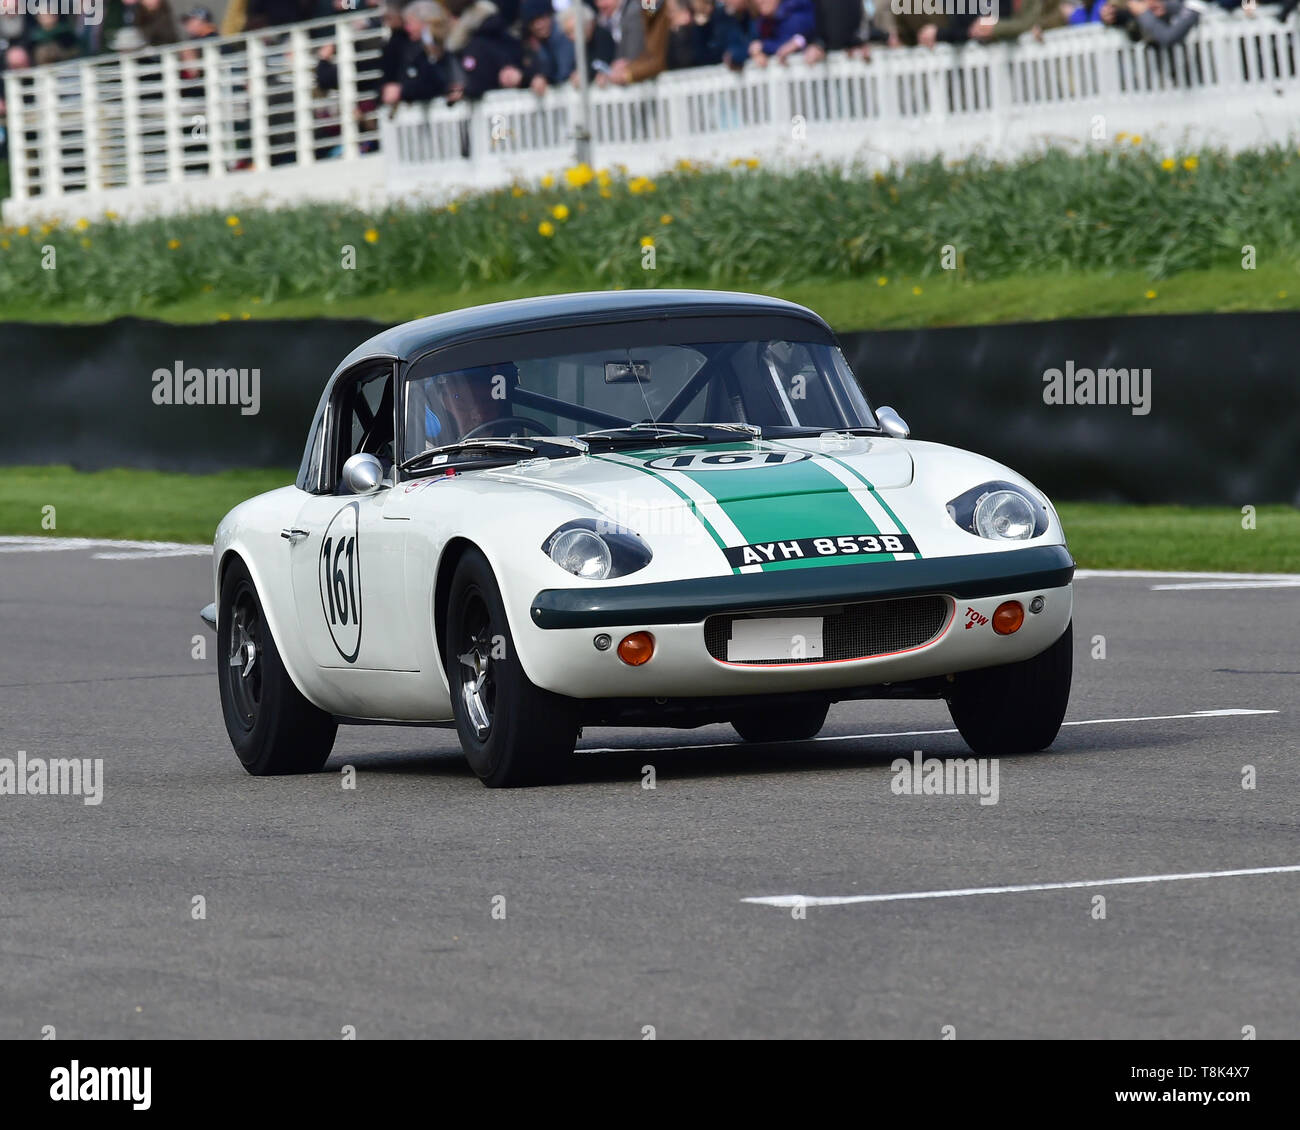 Andrew Haddon, Andy Wolfe, Lotus Elan 26R, Graham Hill Trophy, Closed cockpit GT cars, Prototype cars, Spirit of the RAC TT Races 1960-1964, 77th Memb - Stock Image